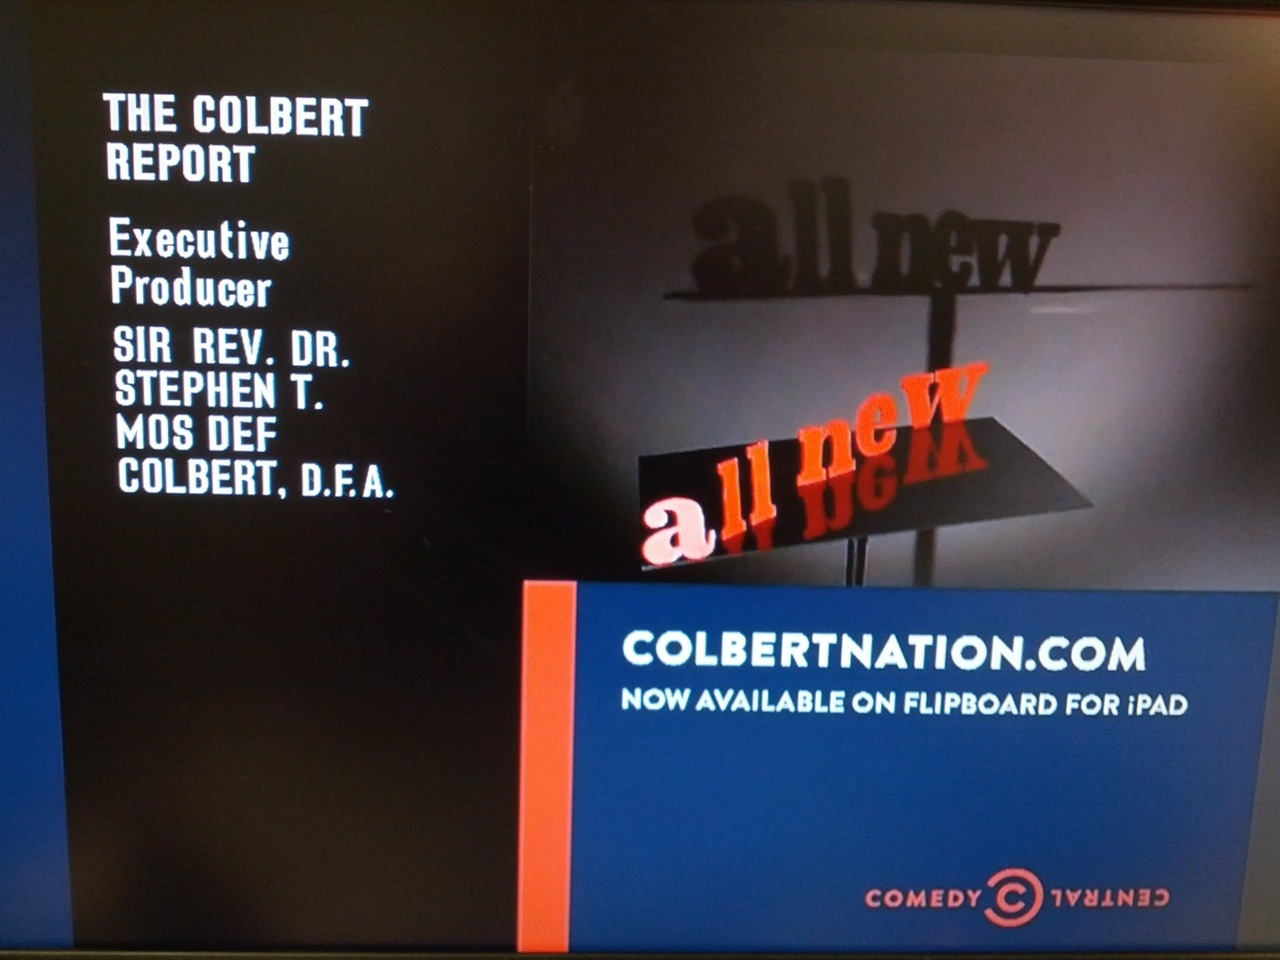 I've never actually paid attention to the Colbert Report credits. Hilarious.  I also made this my first post on Reddit. An upvote would be awesome.